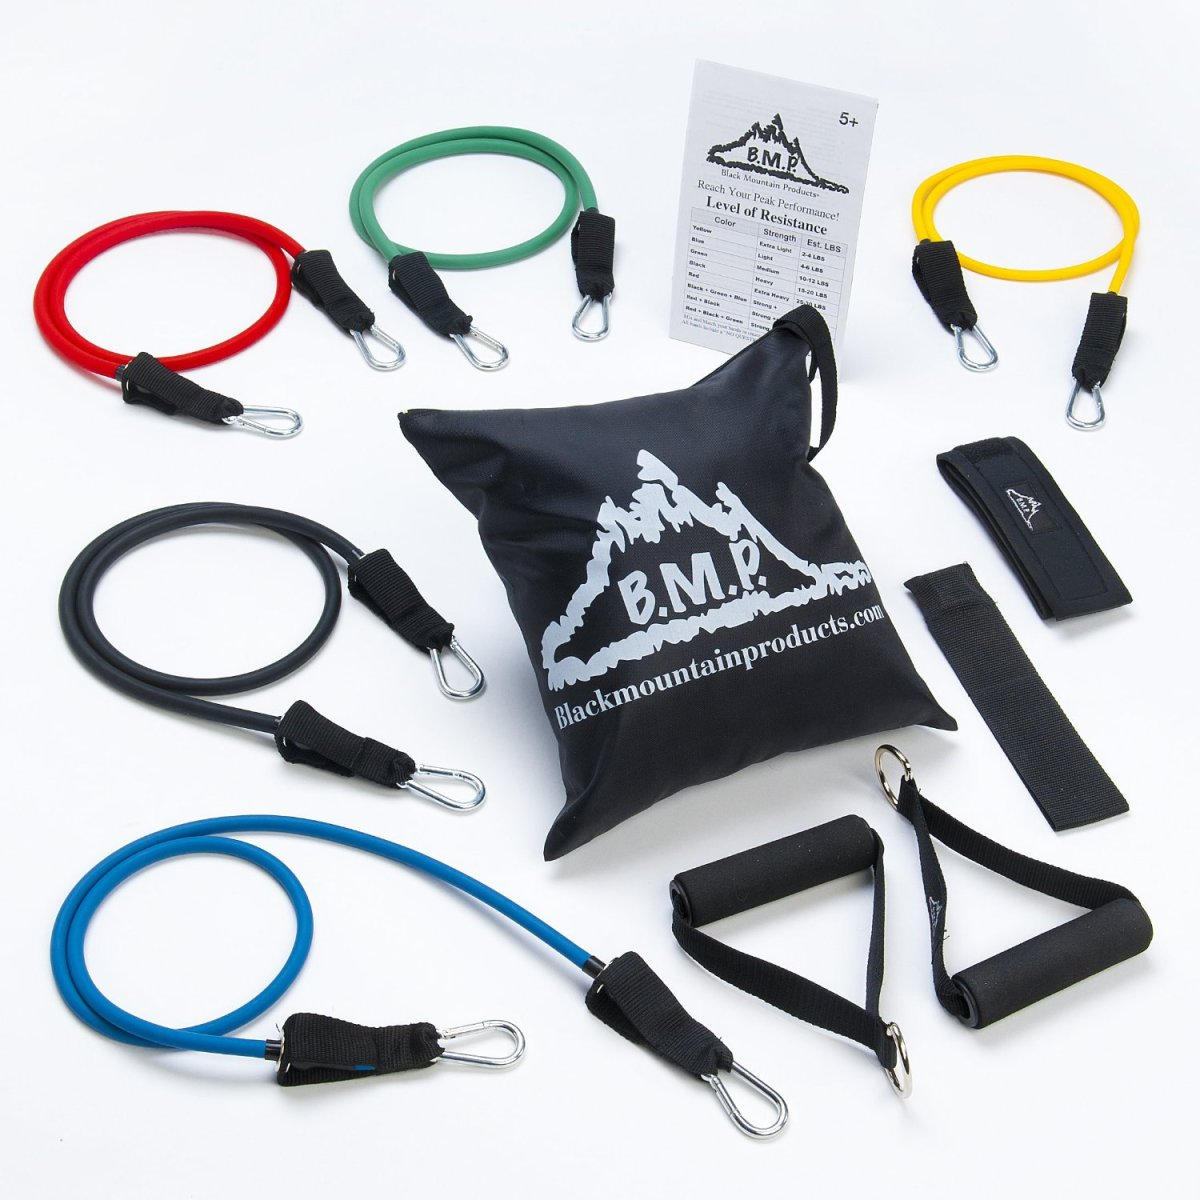 Any band can be used together to create multiple levels of resistance from 4lbs to 75lbs.  The metal clips on bands can attach to soft-grip handles or ankle straps. A door anchor, a carry bag and ankle straps are  included.